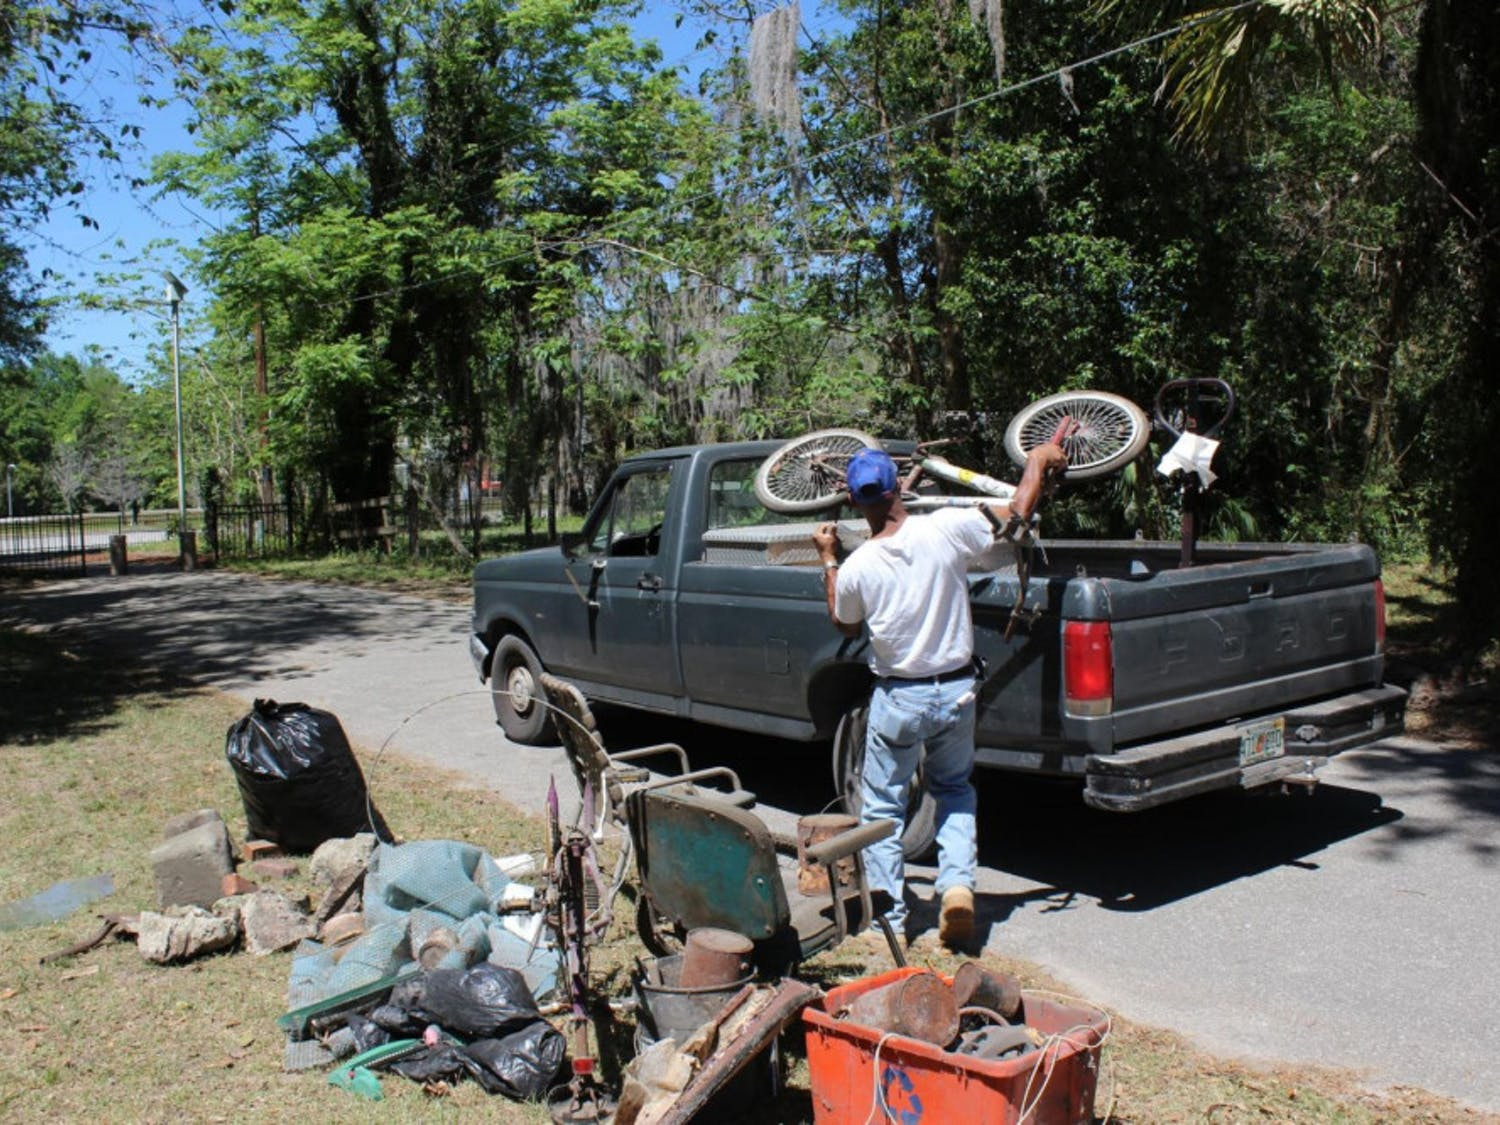 Mitchell George, 54, loads his pickup truck with a rusted bicycle outside an elderly Gainesville woman's home on Saturday. George, who lives in the city's Porters Community, hauled away junk UF students cleared from the woman's home as a part of UF Student Government's inaugural The Big Event, a service day involving about 760 students and about 45 locations throughout Gainesville.